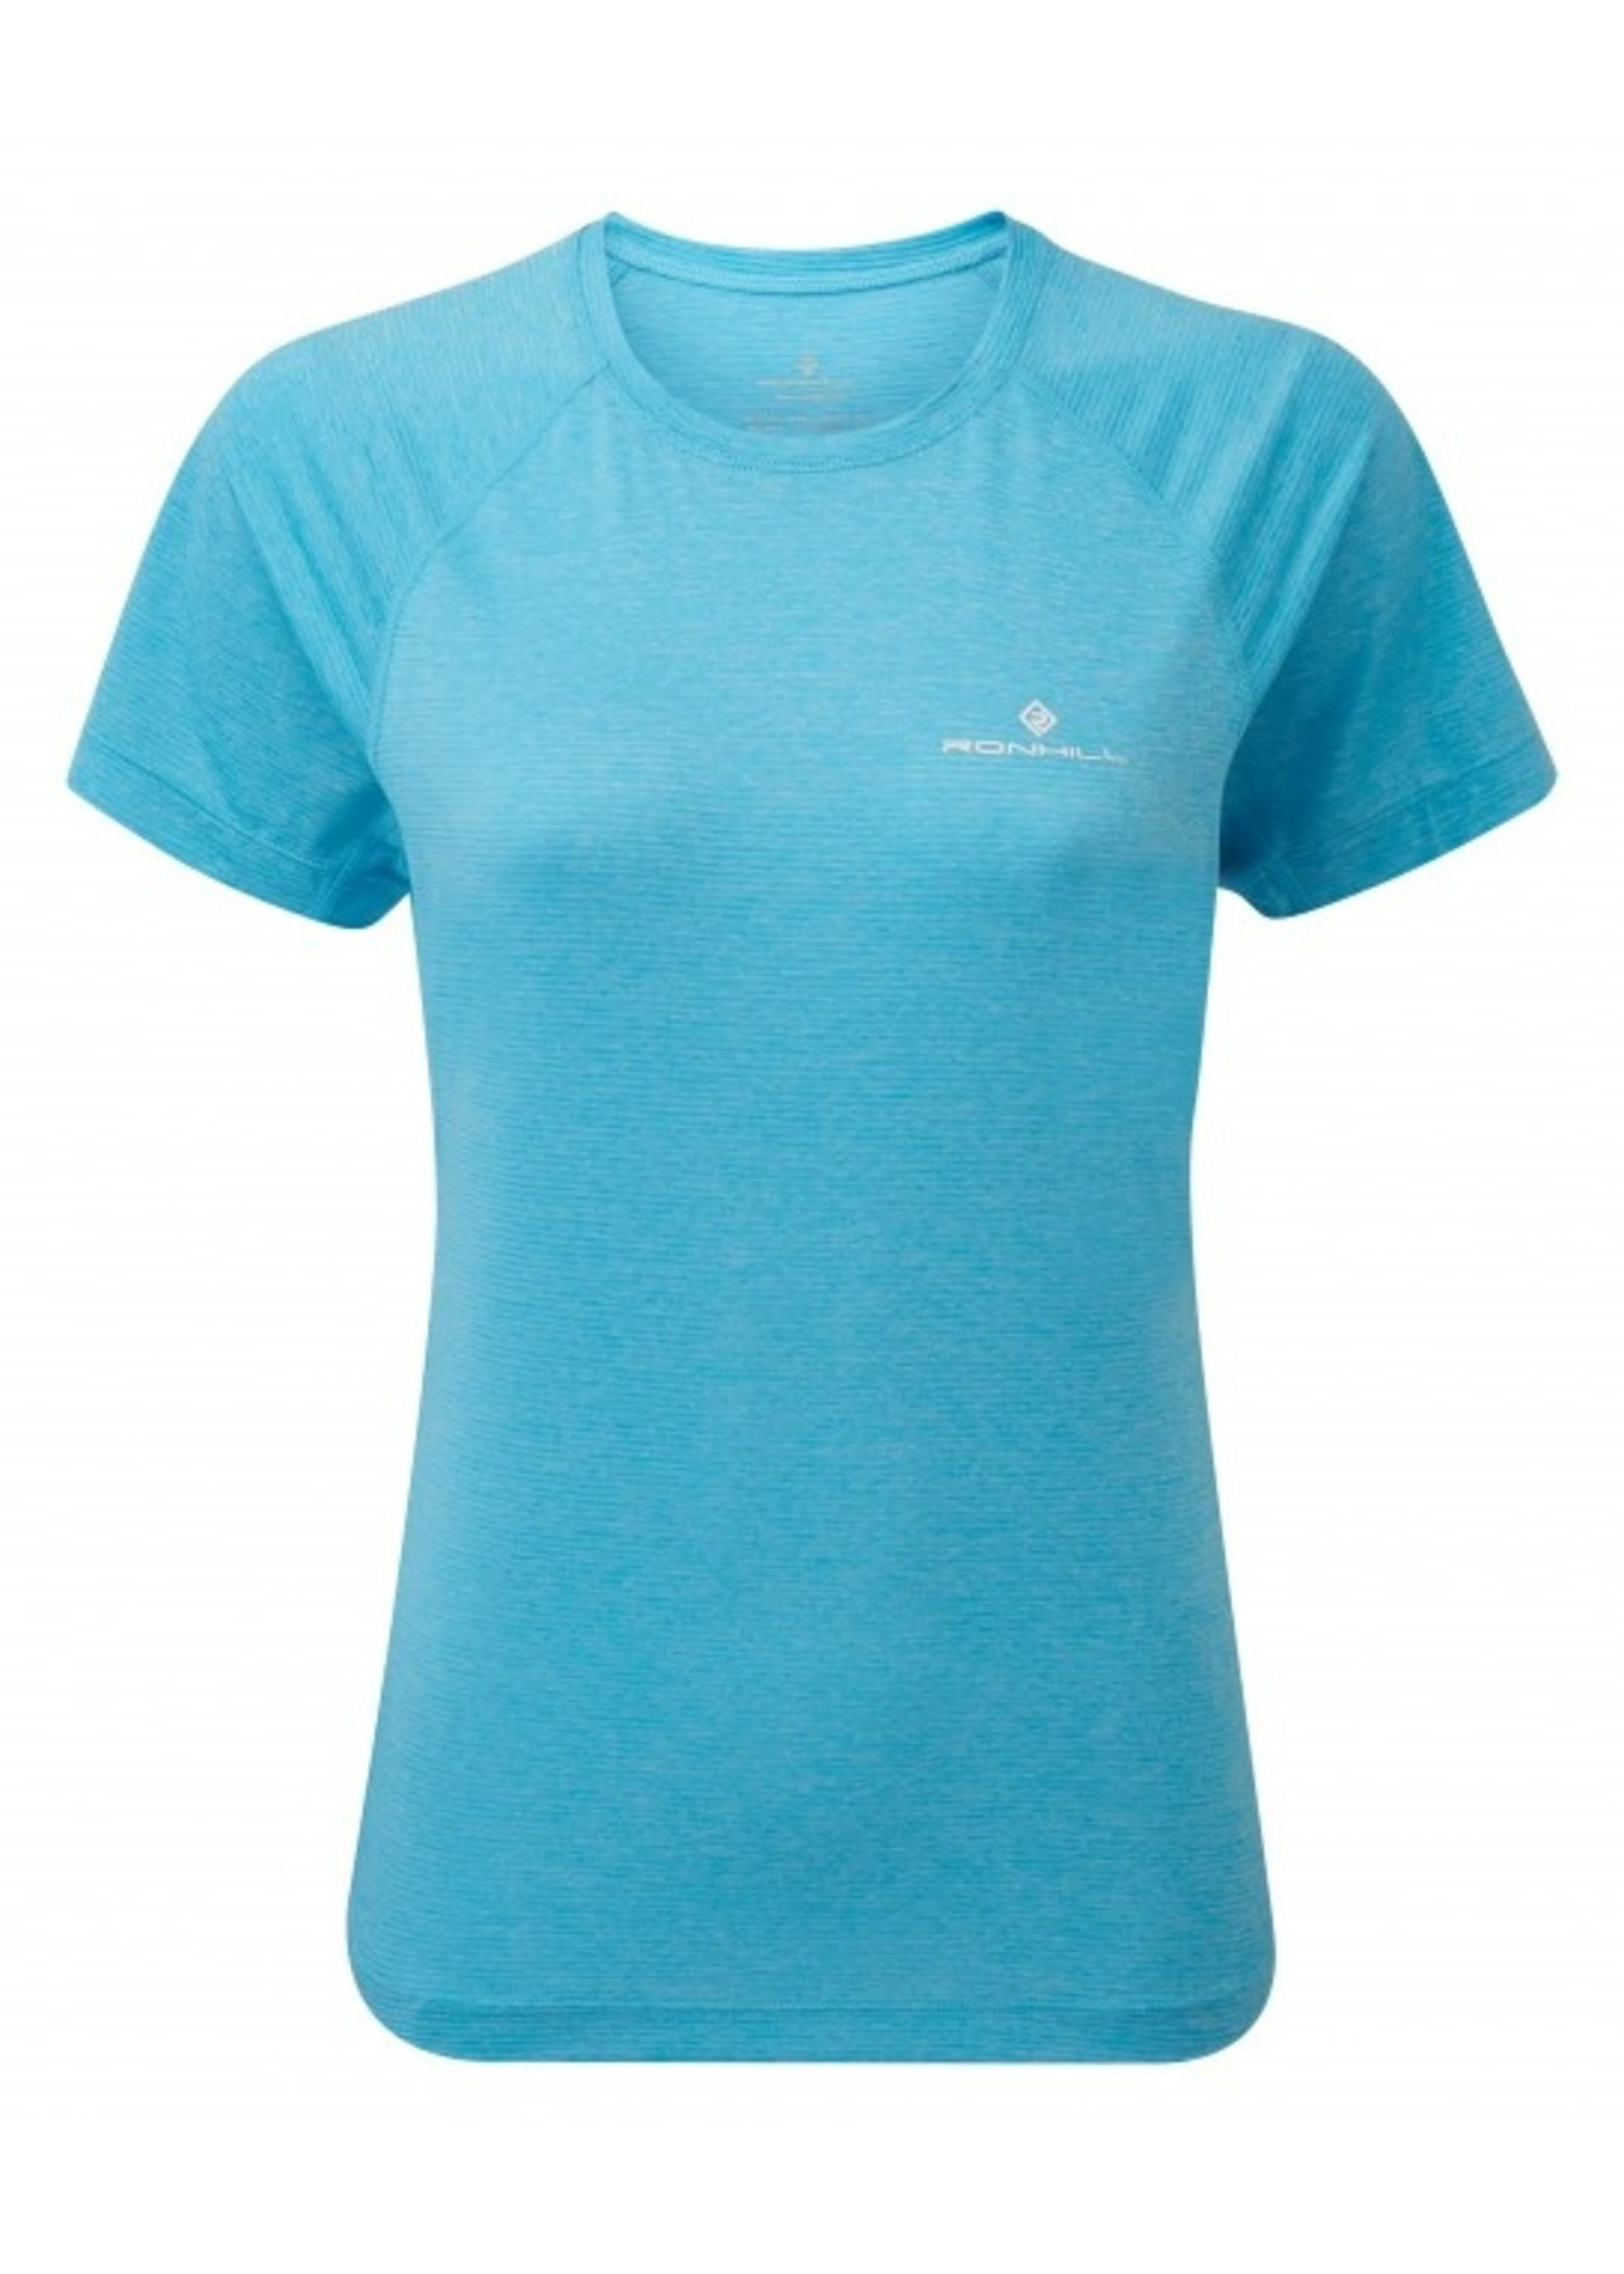 Ronhill Ronhill Stride Ladies Tee (2020)